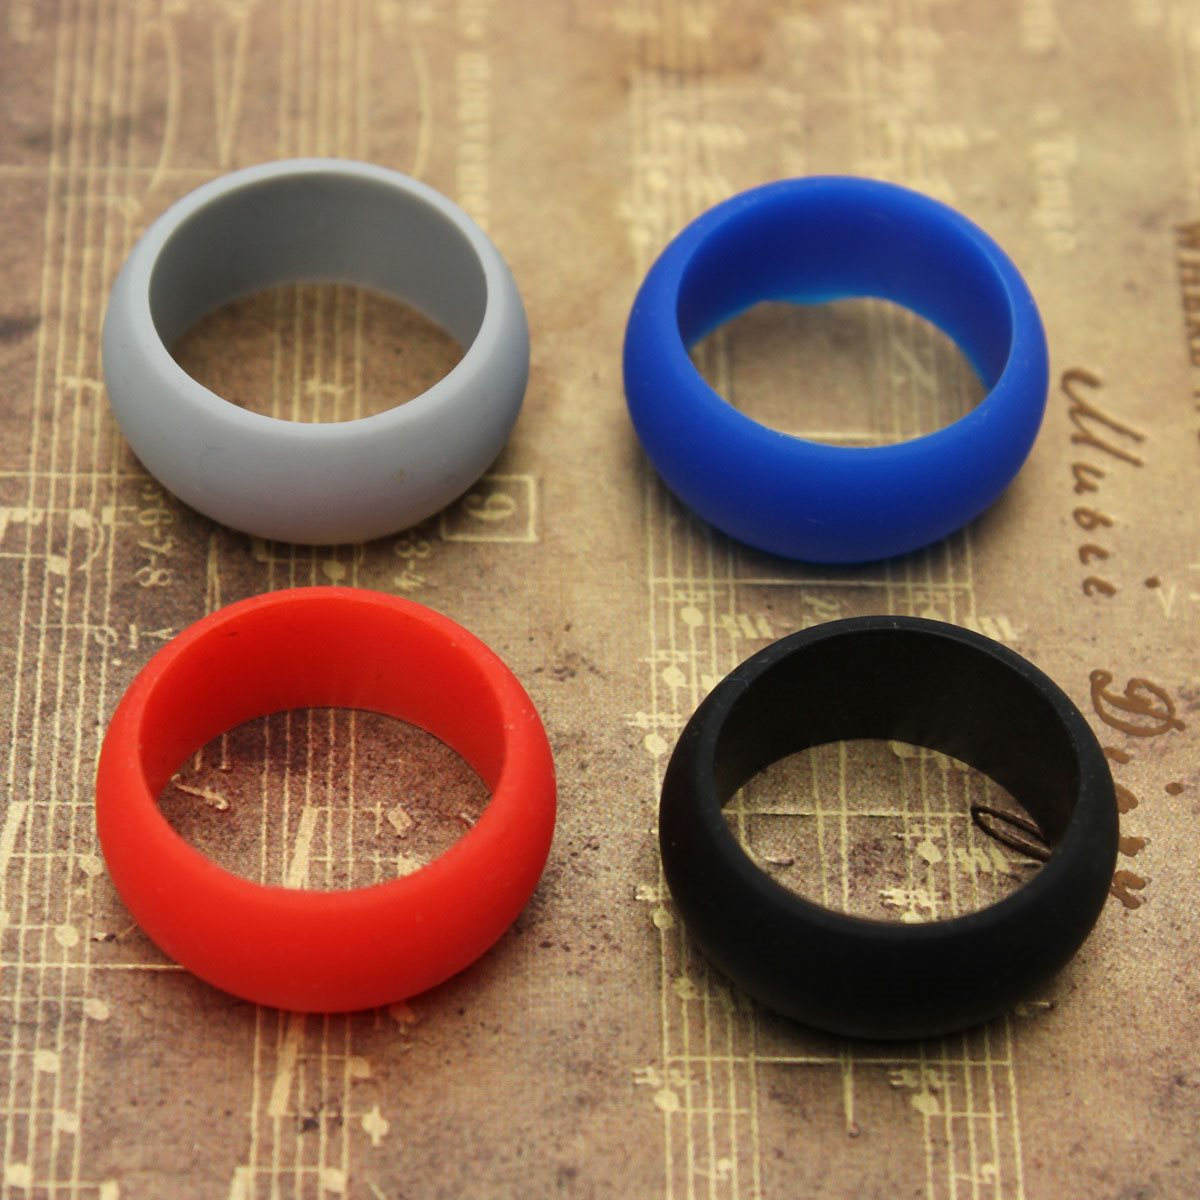 hot selling ring flexible hypoallergenic silicone rubber 4 colors wedding rings engagement cocktail soft touch men - Hypoallergenic Wedding Rings